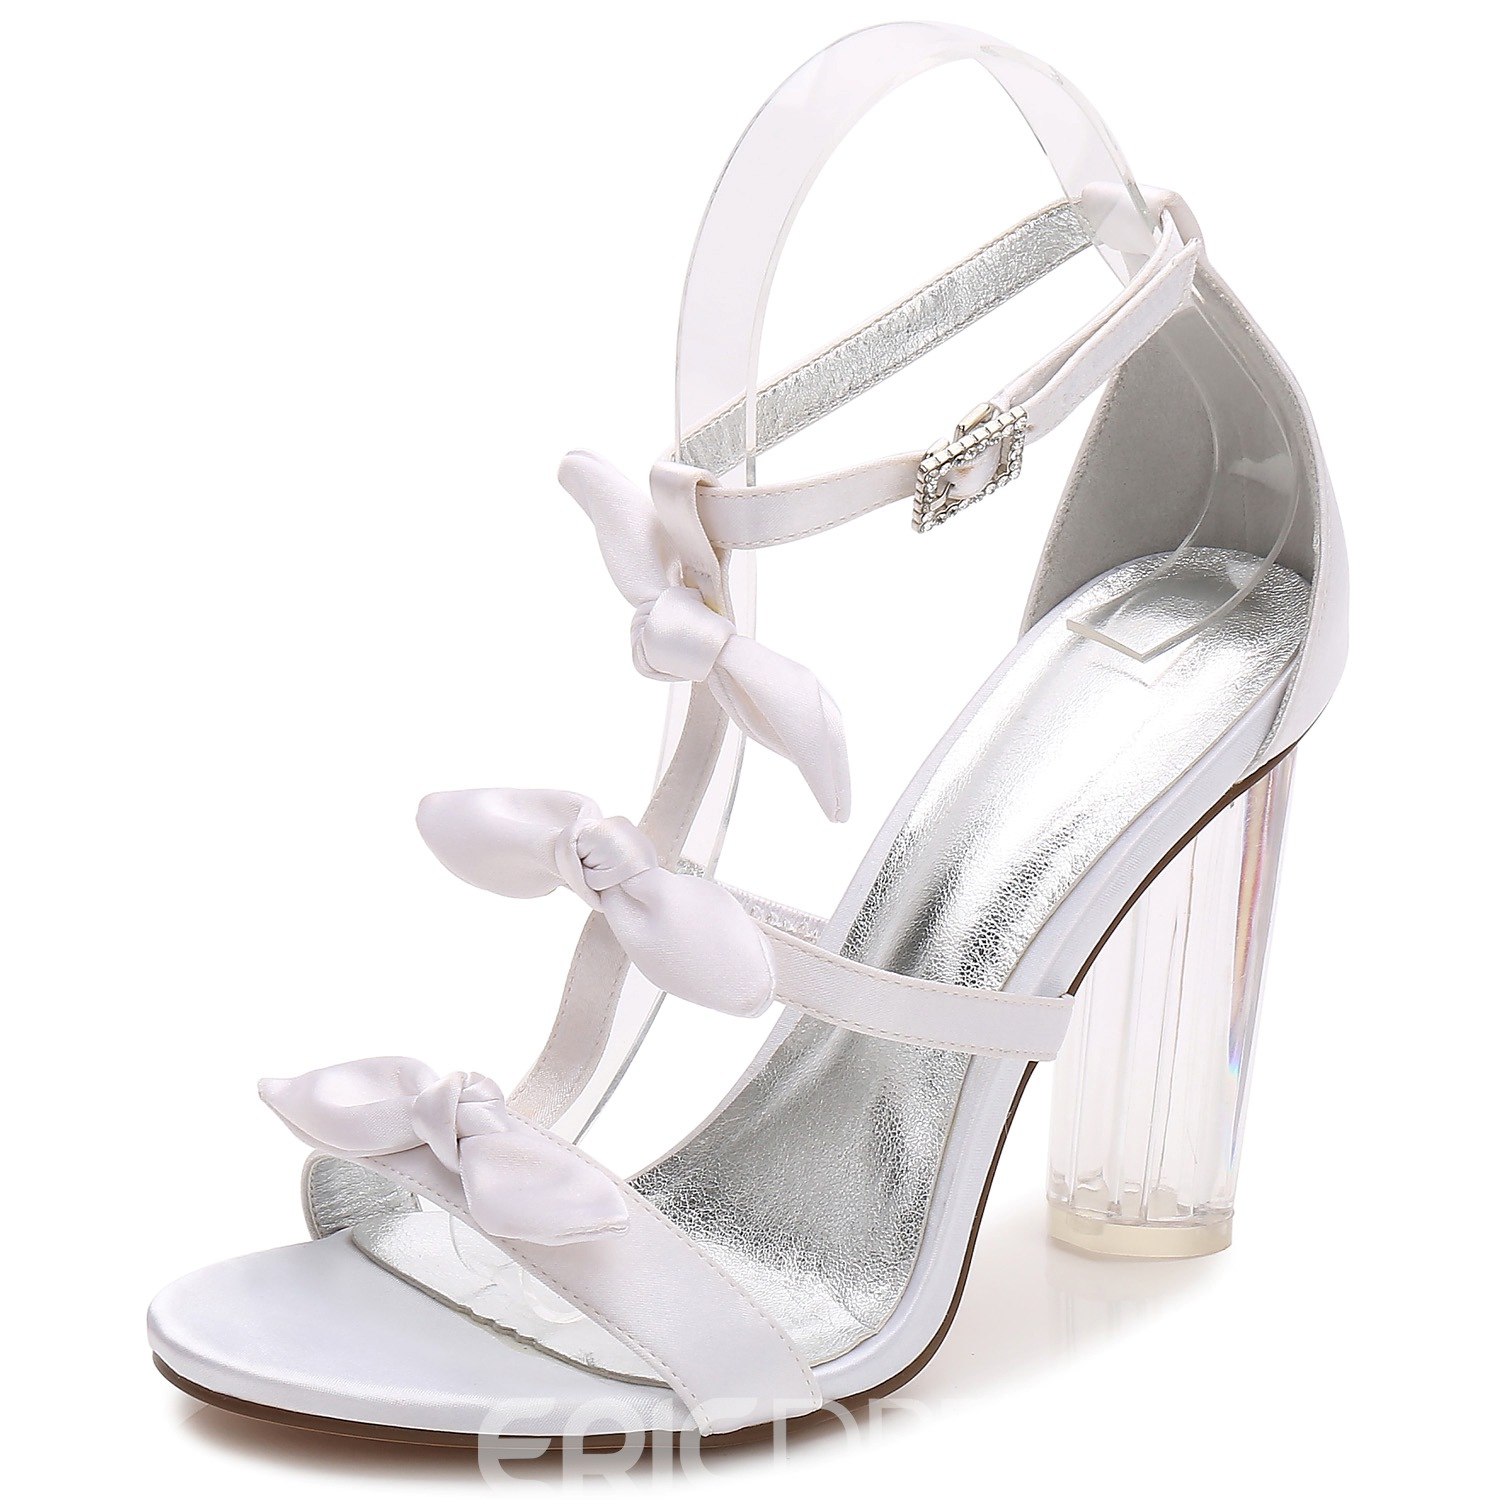 Ericdress Rhinestone Open Toe Transparent Chunky Heel Wedding Shoes with Bowknot